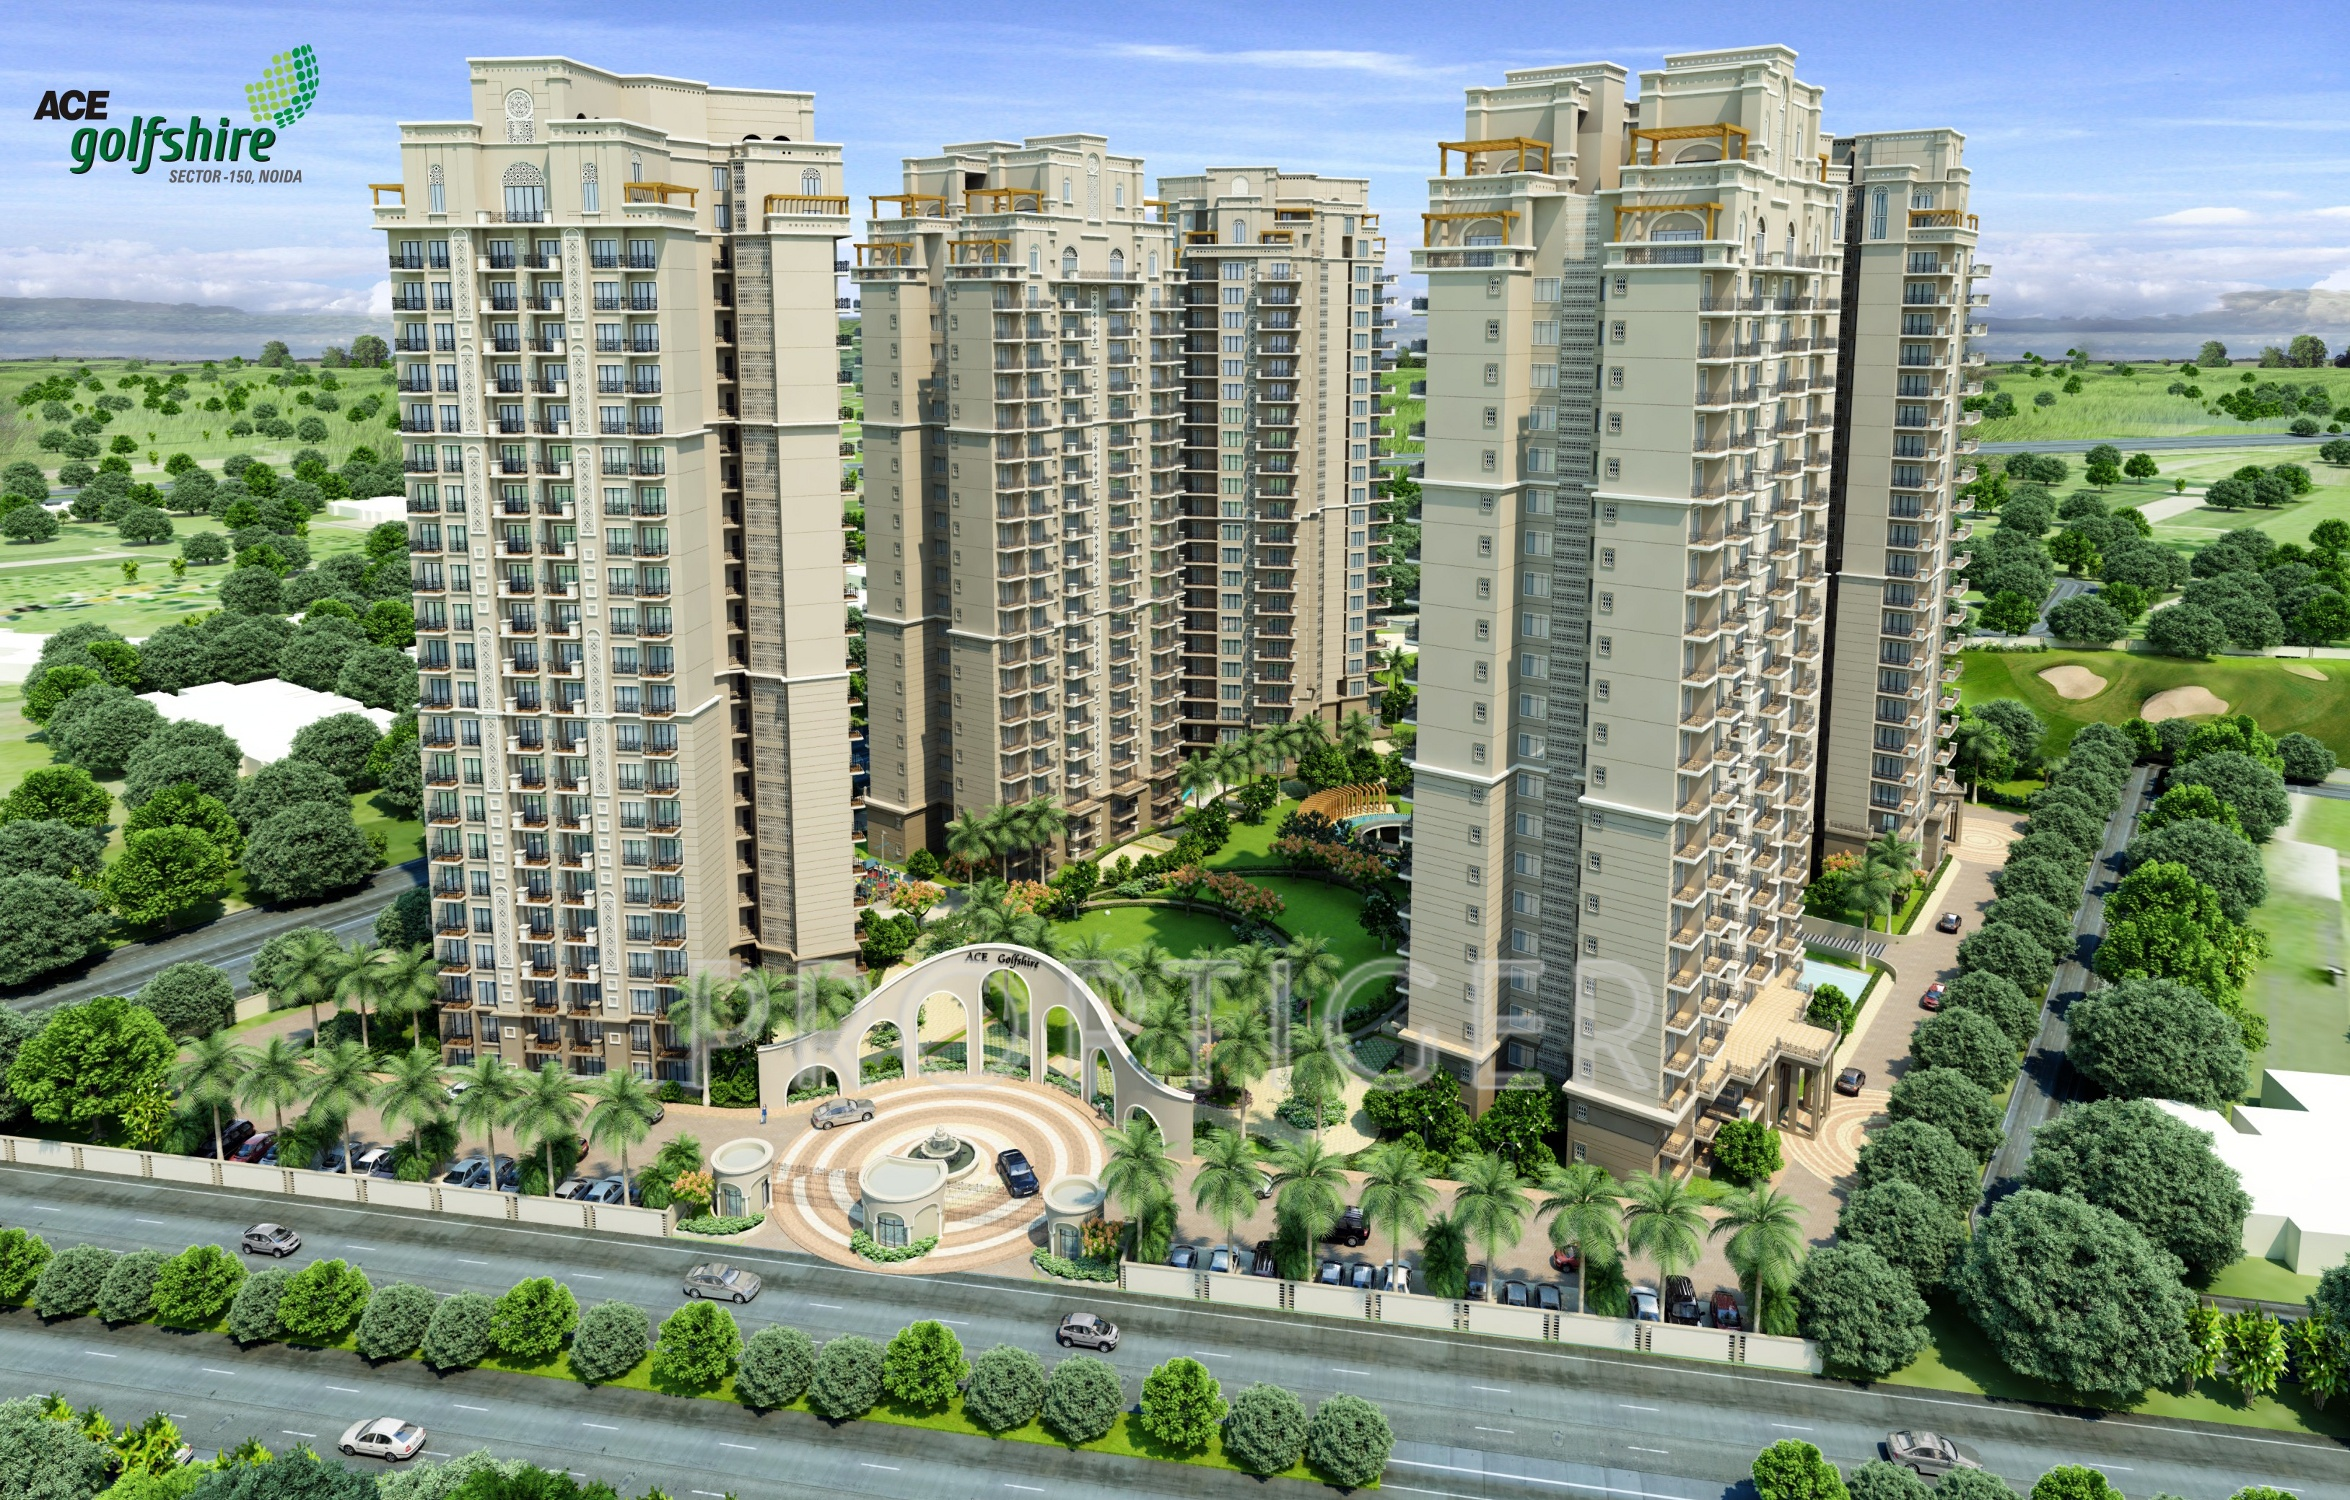 ACE GOLFSHIRE OFFERED 3BHK BHK LUXURY APARTMENTS AT SECTOR 150, NOIDA